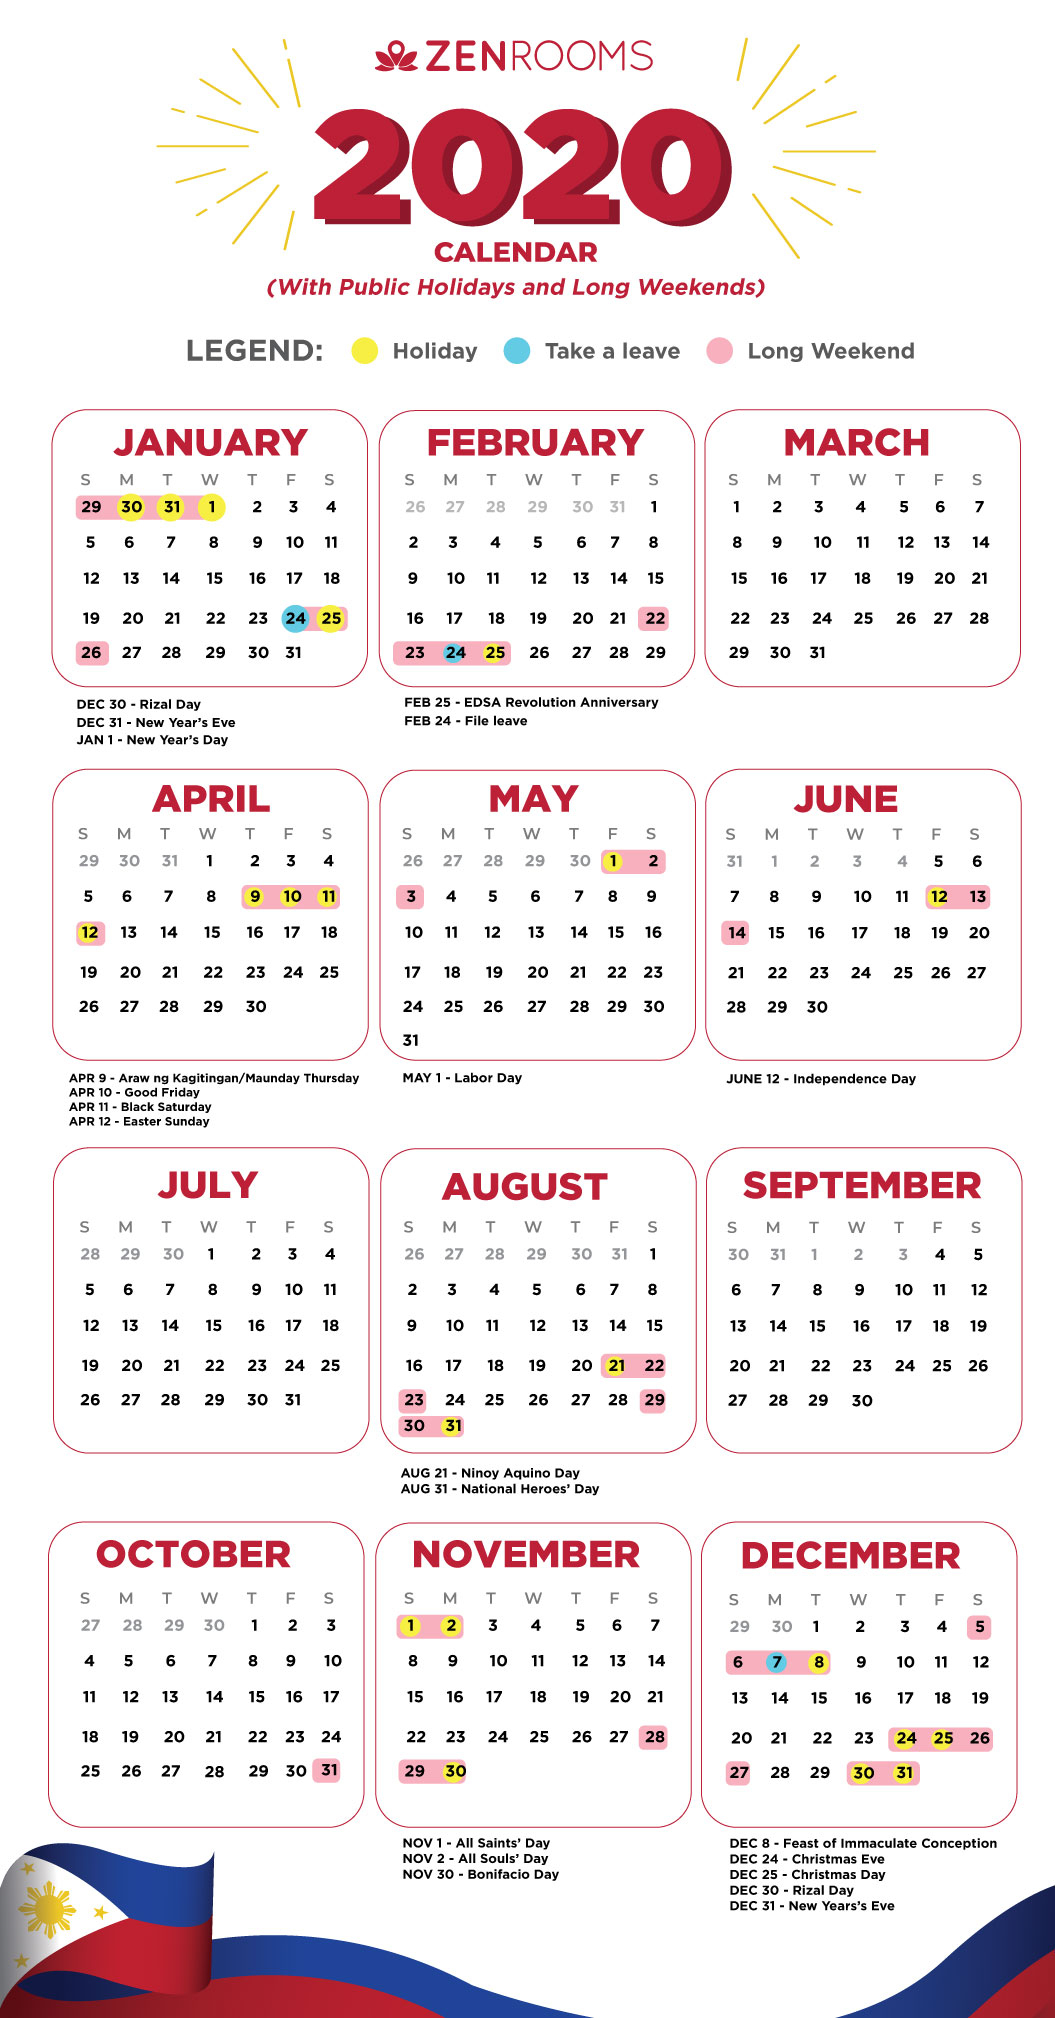 2020 Holiday Calendar Philippines: Travel Guide With Tips regarding Calendar Printing Services Philippines